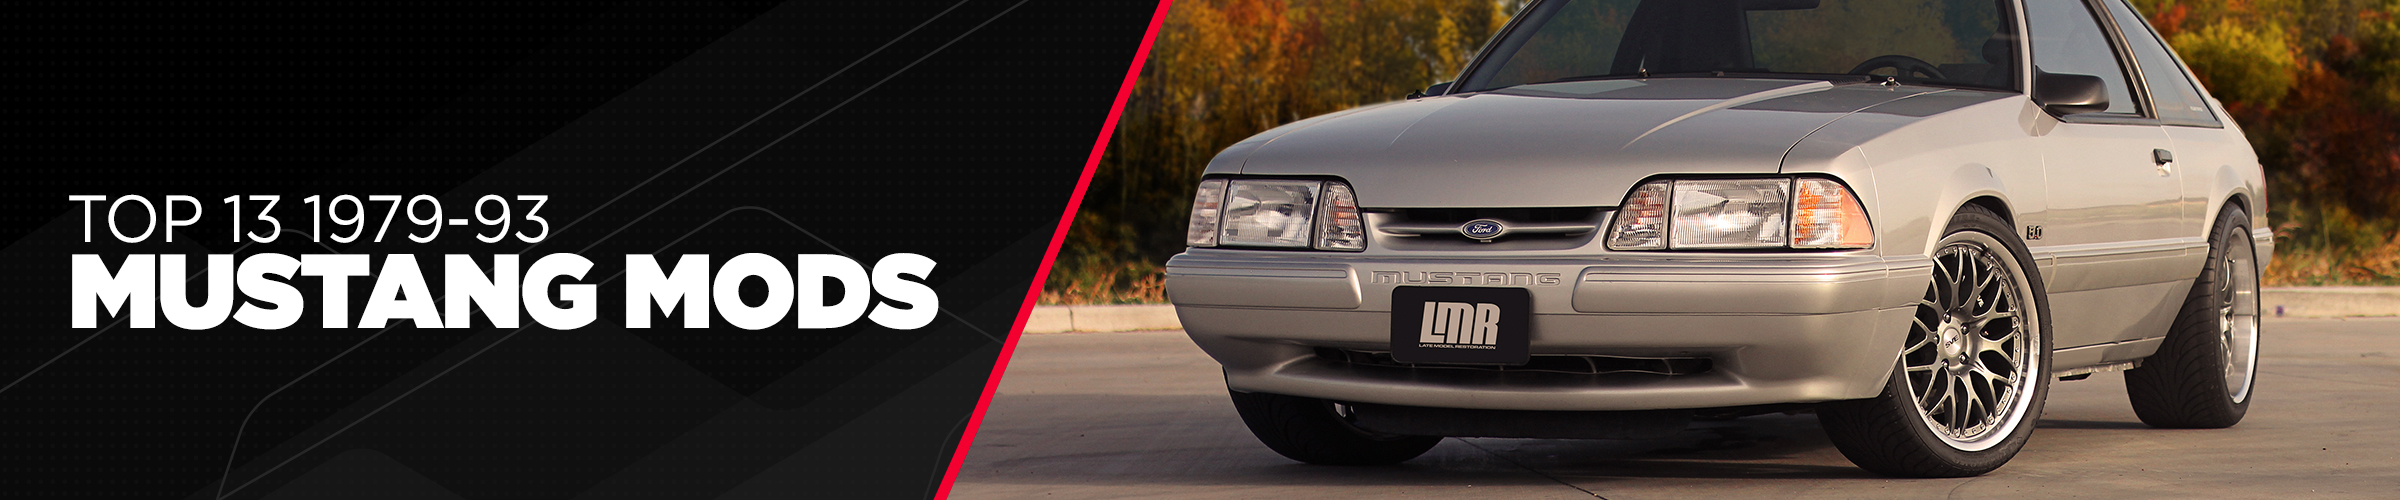 Top 13 Mustang Fox Body Mods - LMR com